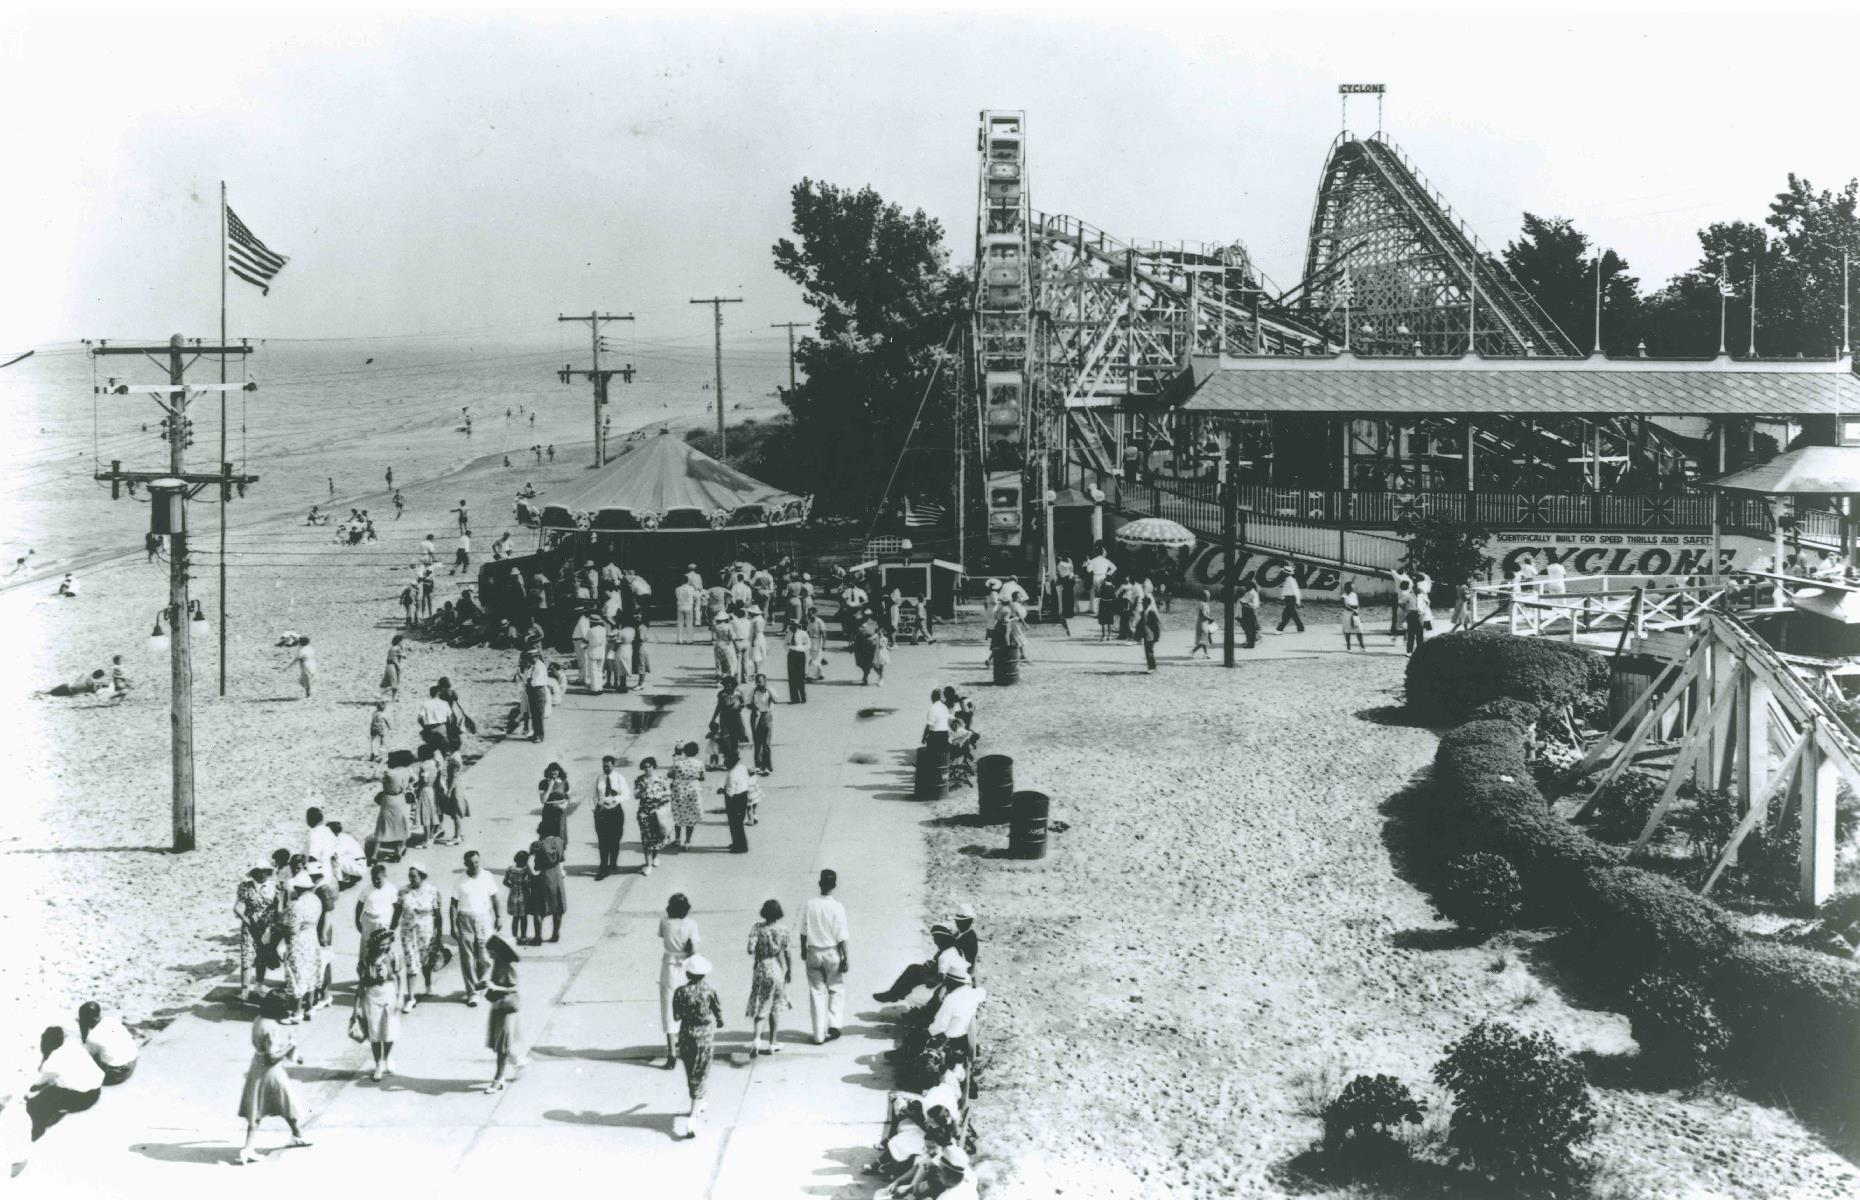 Slide 22 of 51: Cedar Point is one of the oldest theme parks in America and has been welcoming thrill-seekers through its gates for 150 years. The first roller coaster Switchback Railway debuted here in 1892, a couple of decades after the park opened. As you can see from this shot taken in the 1920s, it quickly became a busy and popular destination as more and more rides and attractions were added. Check out these stunning historic images of theme parks in full swing.